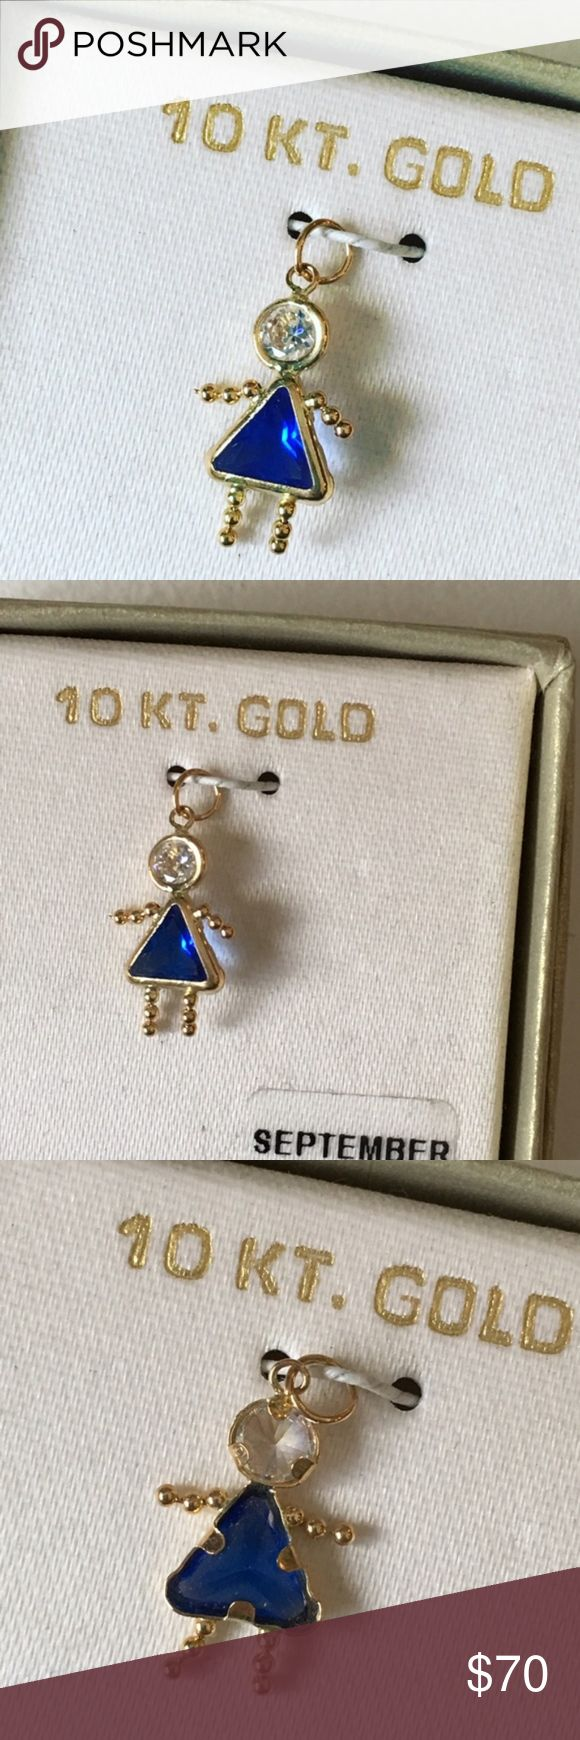 "NEW 10K Gold September Girl Birthstone Pendant Brand new in box. Pendant measures about .75"" long. Pendant to put on your own chain necklace or bracelet. Pendant only, does not come with a chain. Jewelry"